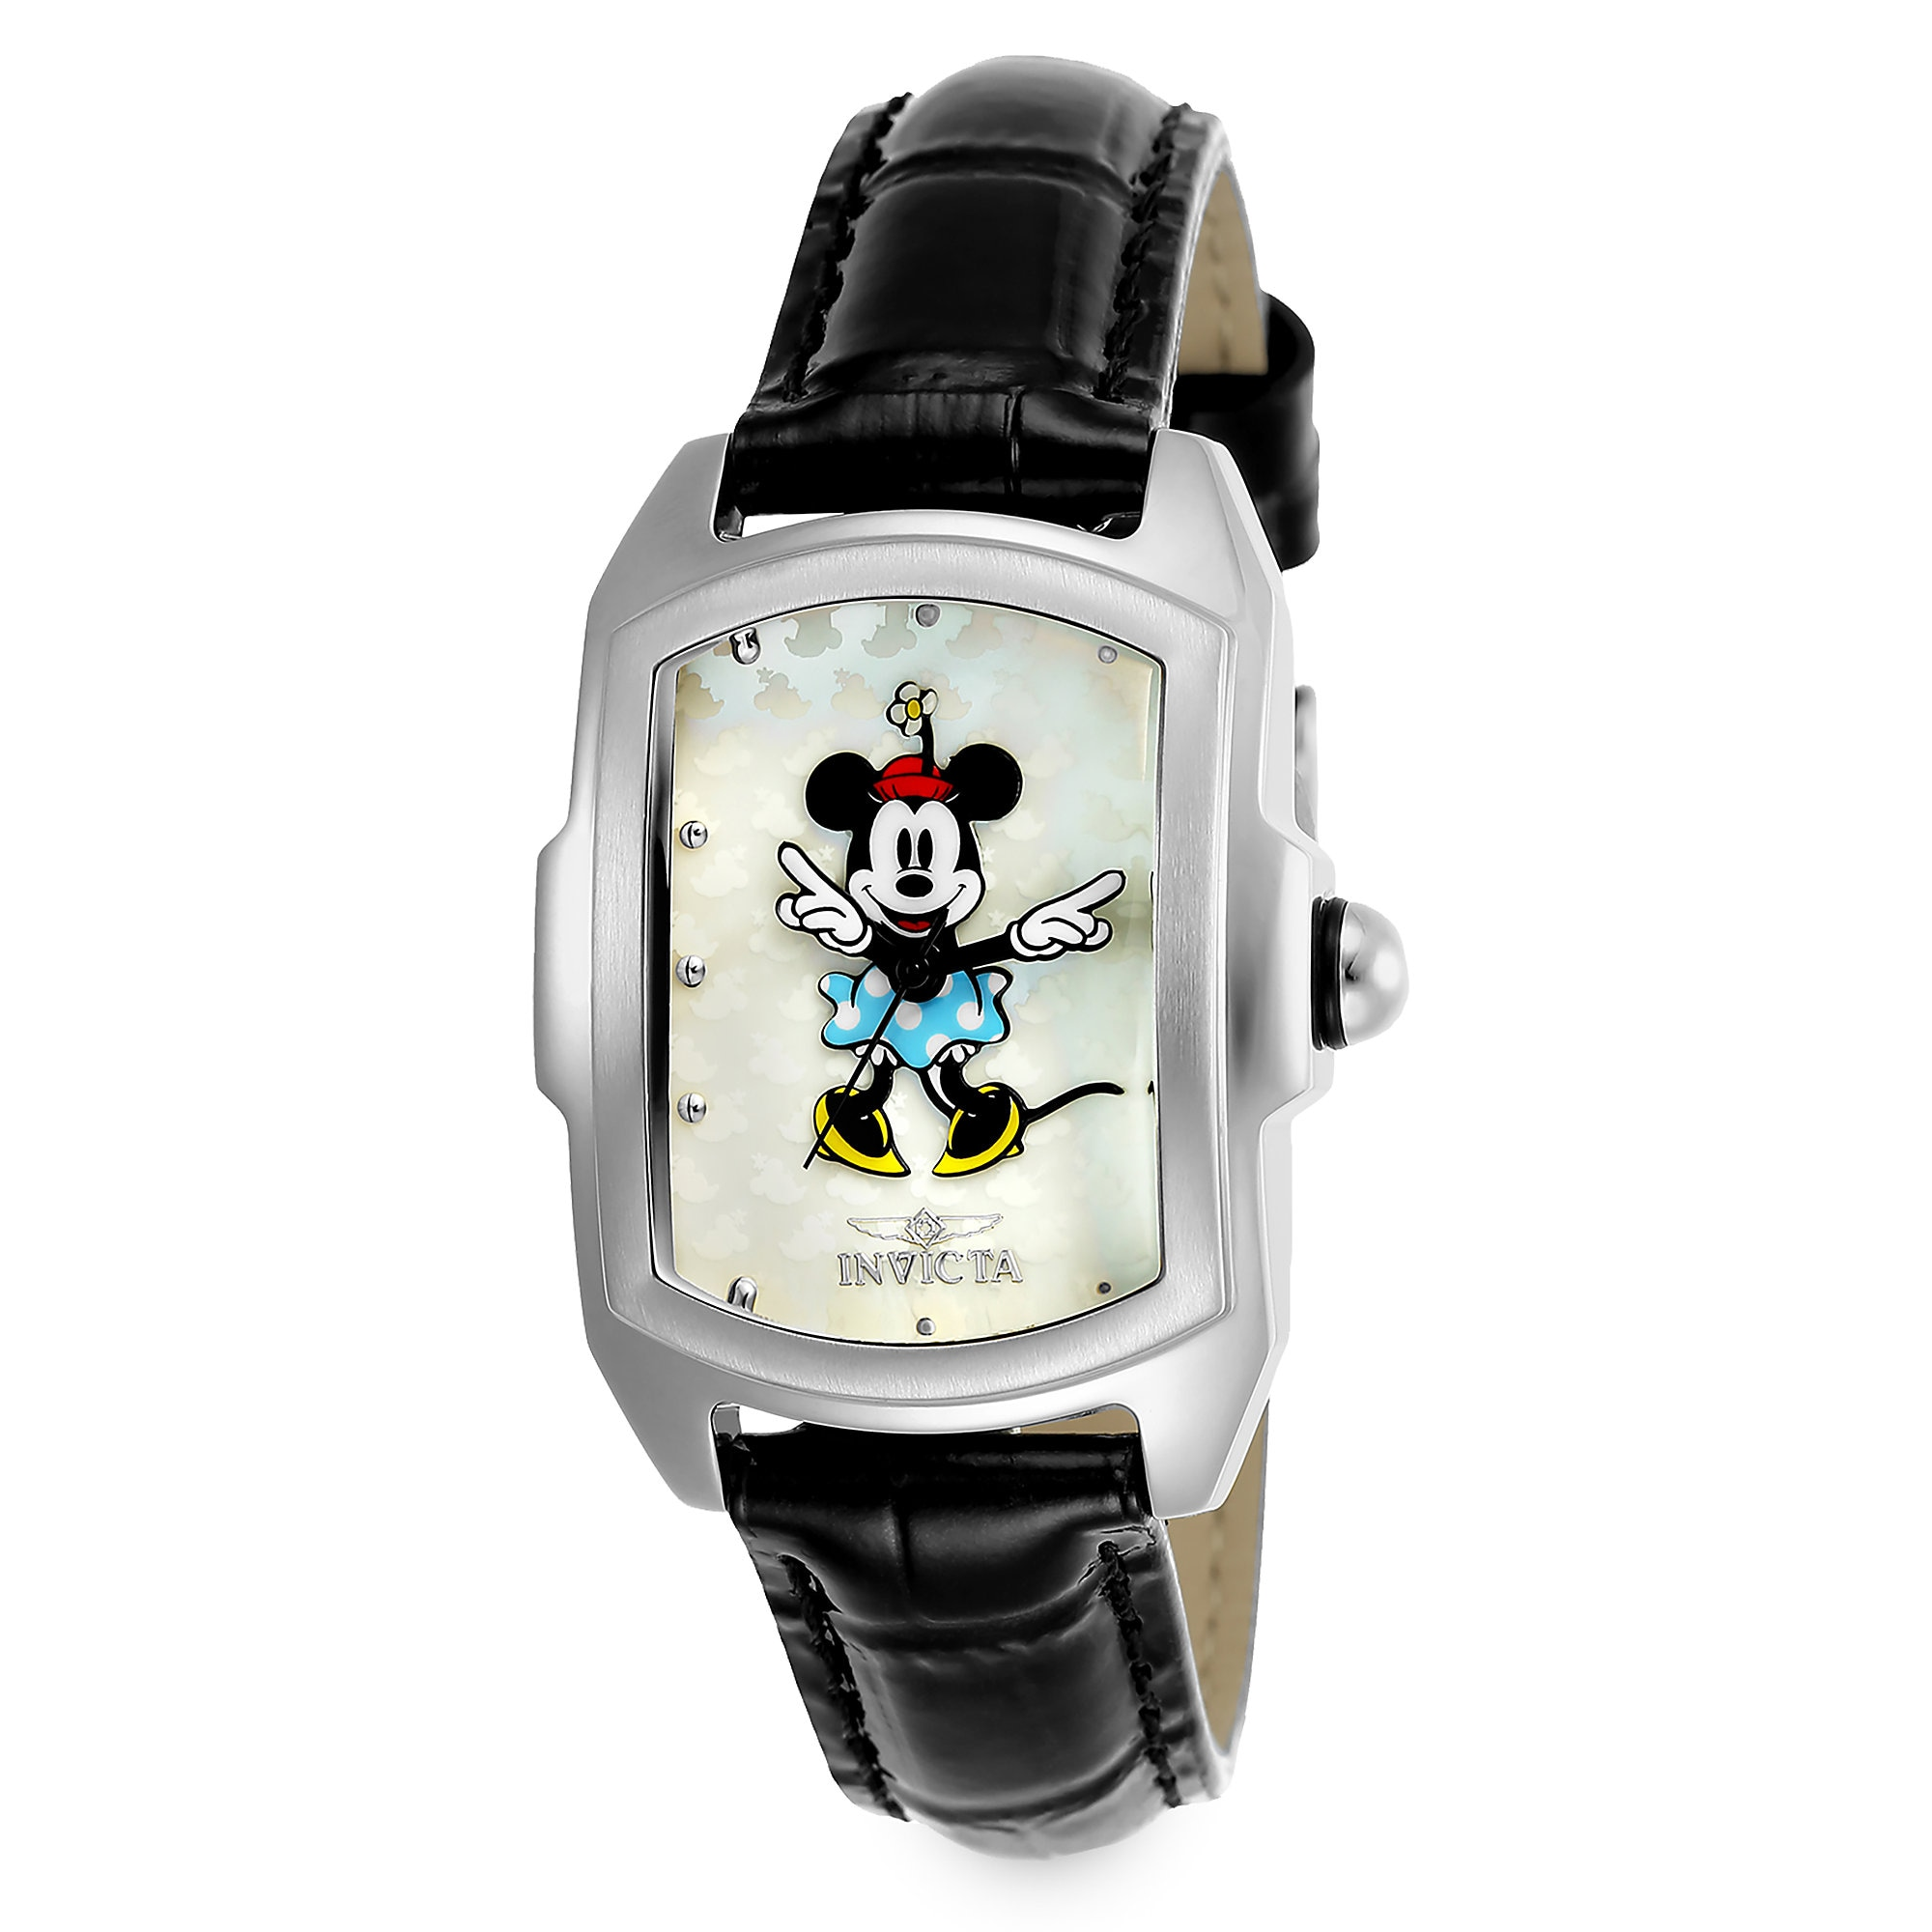 212044a7b68 Minnie Mouse Watch by Invicta - Limited Edition